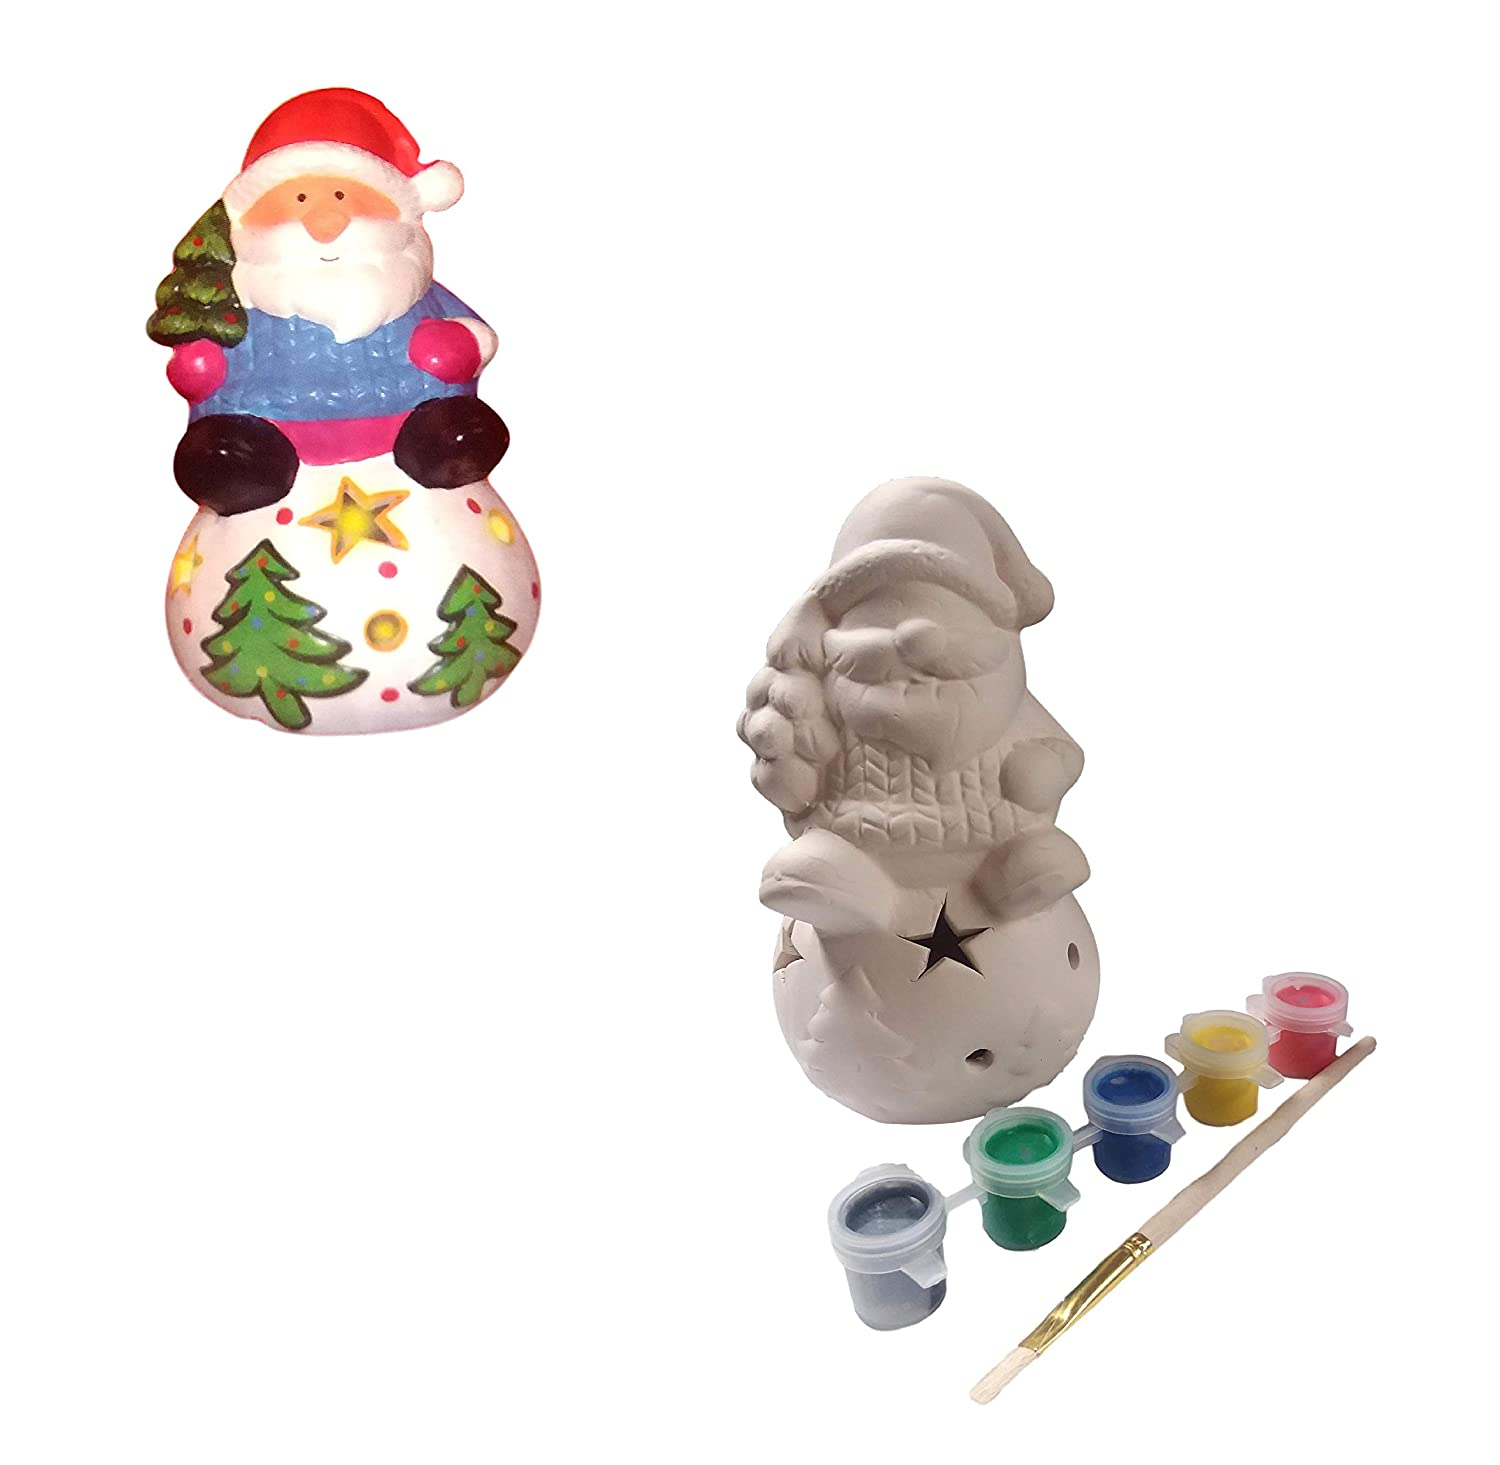 Complete Kit Great Gift Color Changing Light up Santa Design Your Own Ceramic Christmas Characters Paint Your Own Ceramic Christmas Holiday Set DIY Crafts for Kids